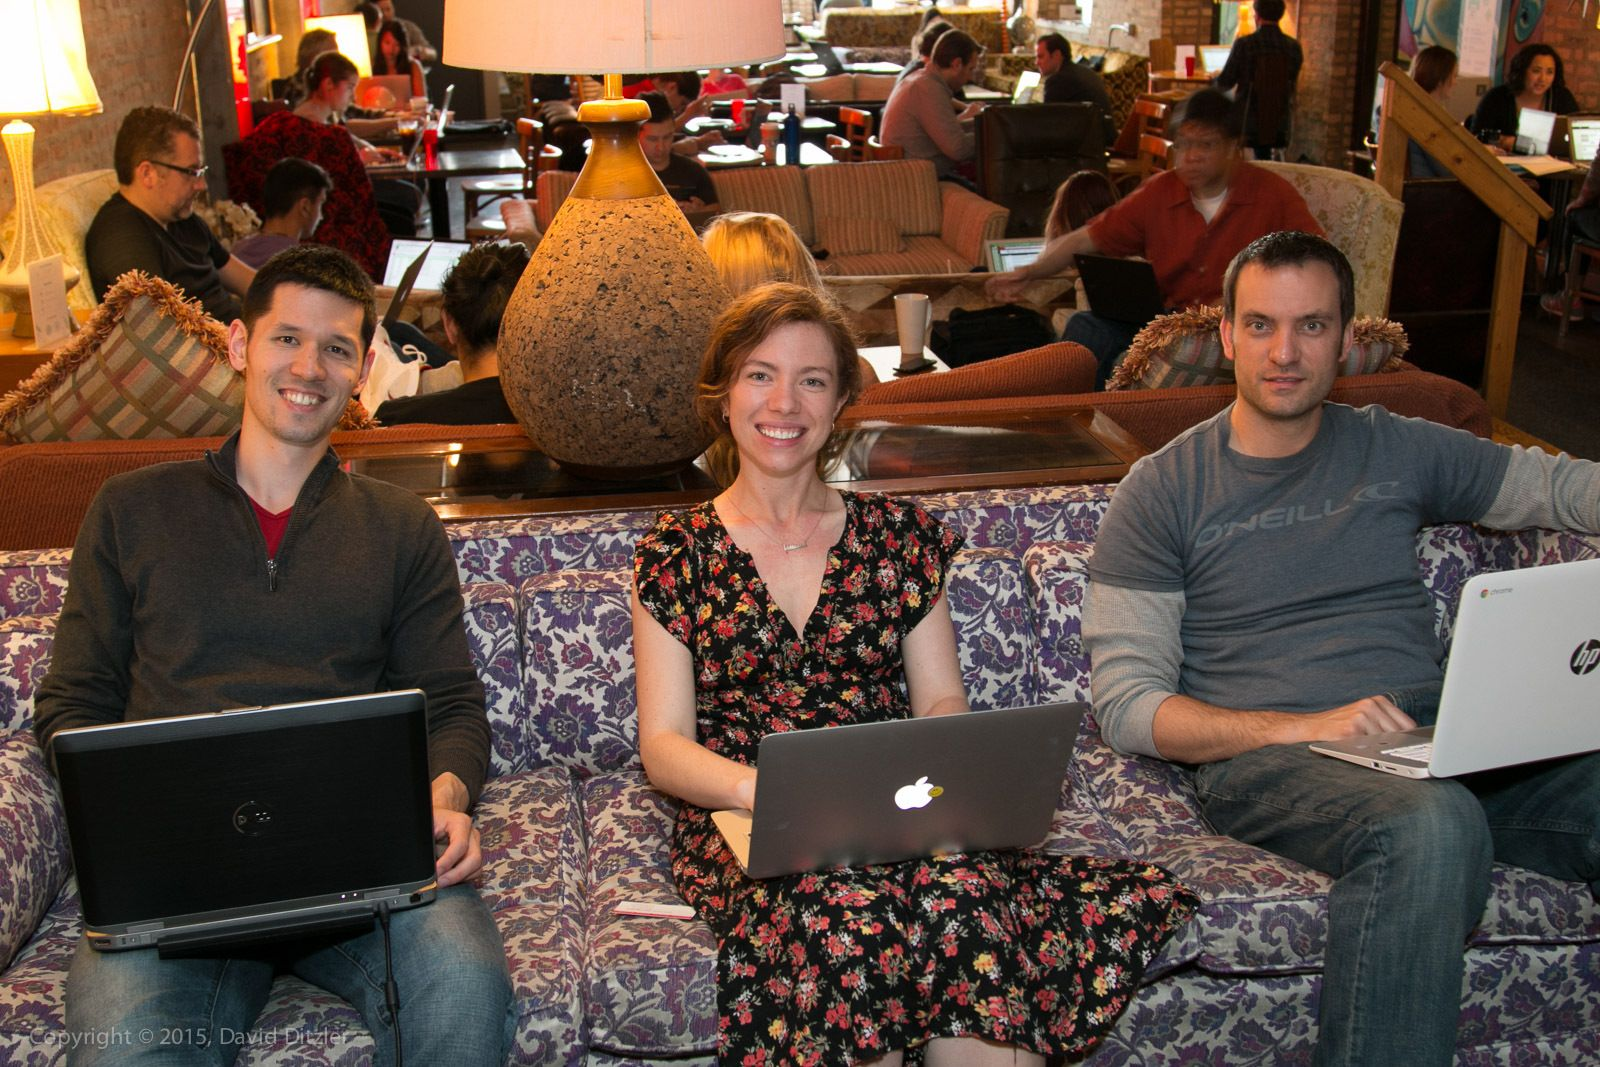 Work From Home Chicago - Coworking for Telecommuters